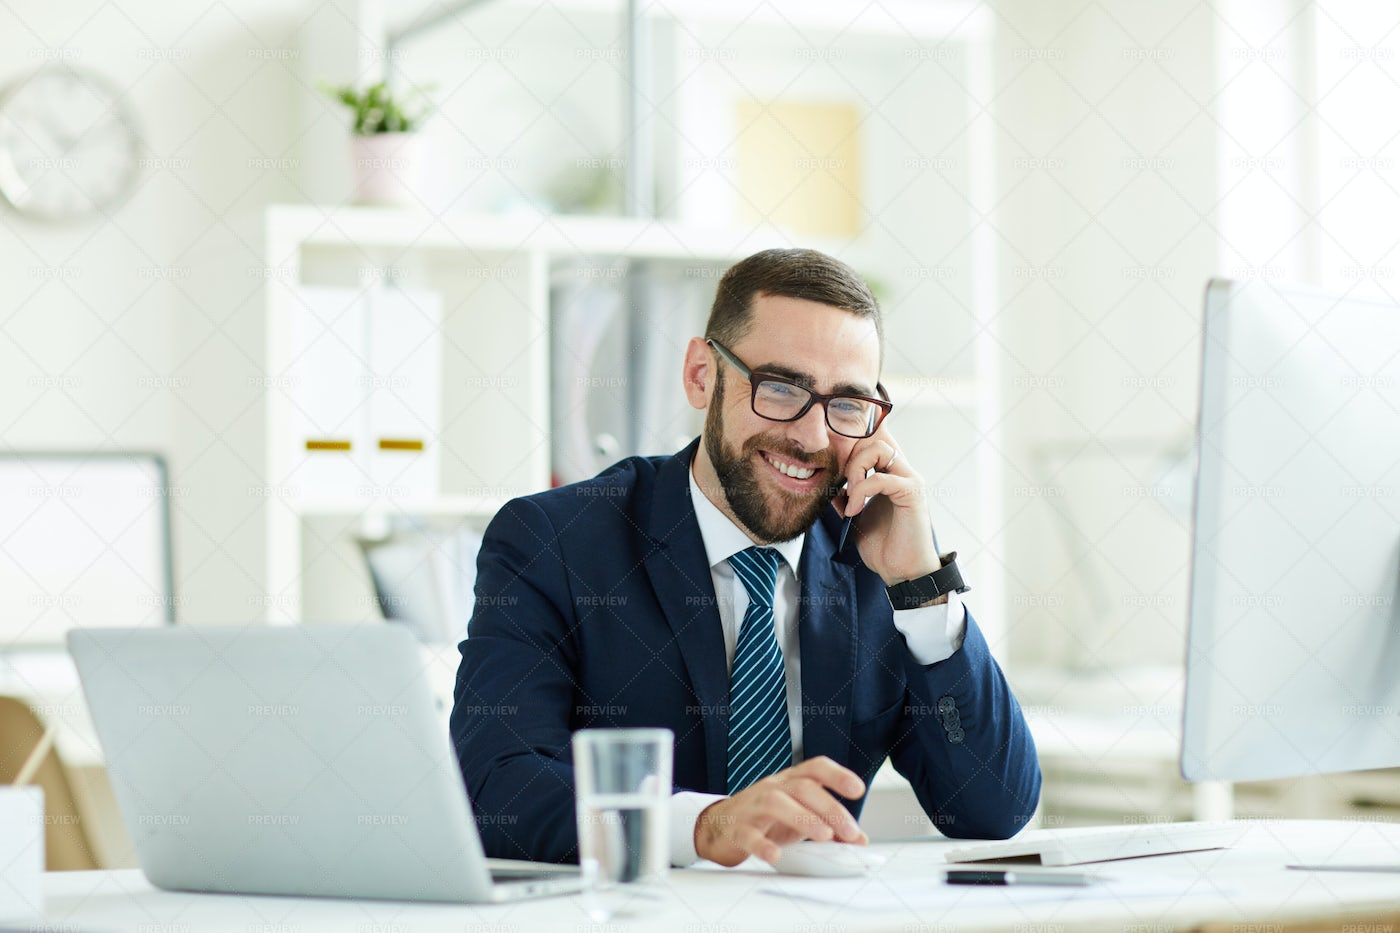 Excited Manager Talking On Phone: Stock Photos